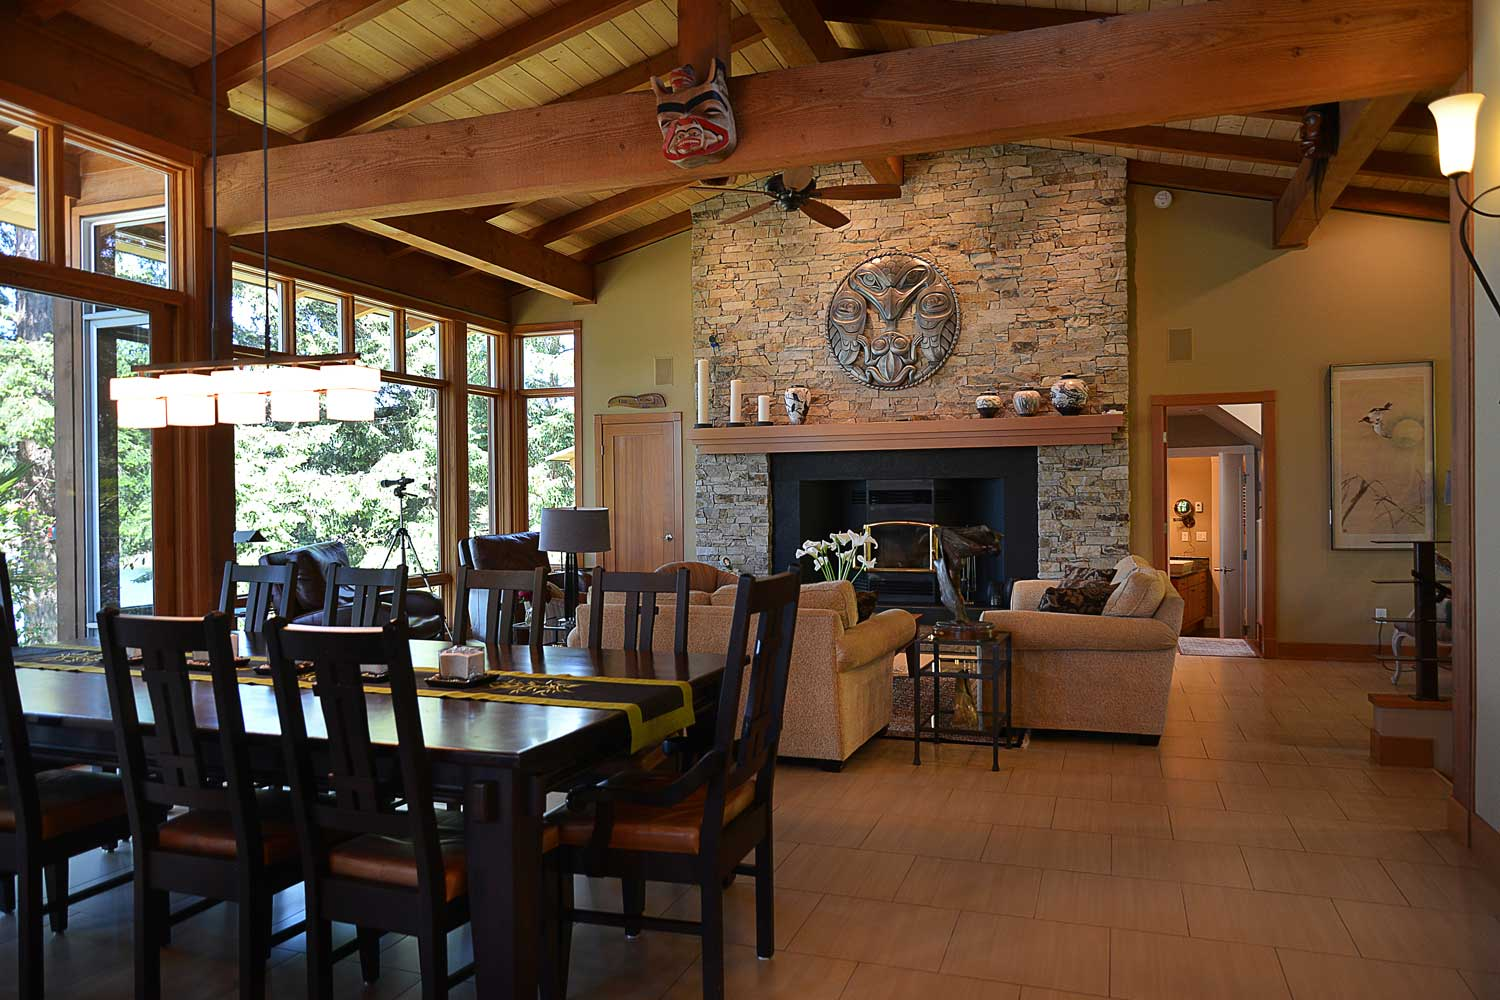 The dining room and living area of this high-end rental home feature an incredible wood-burning fire and authentic First Nations artwork.